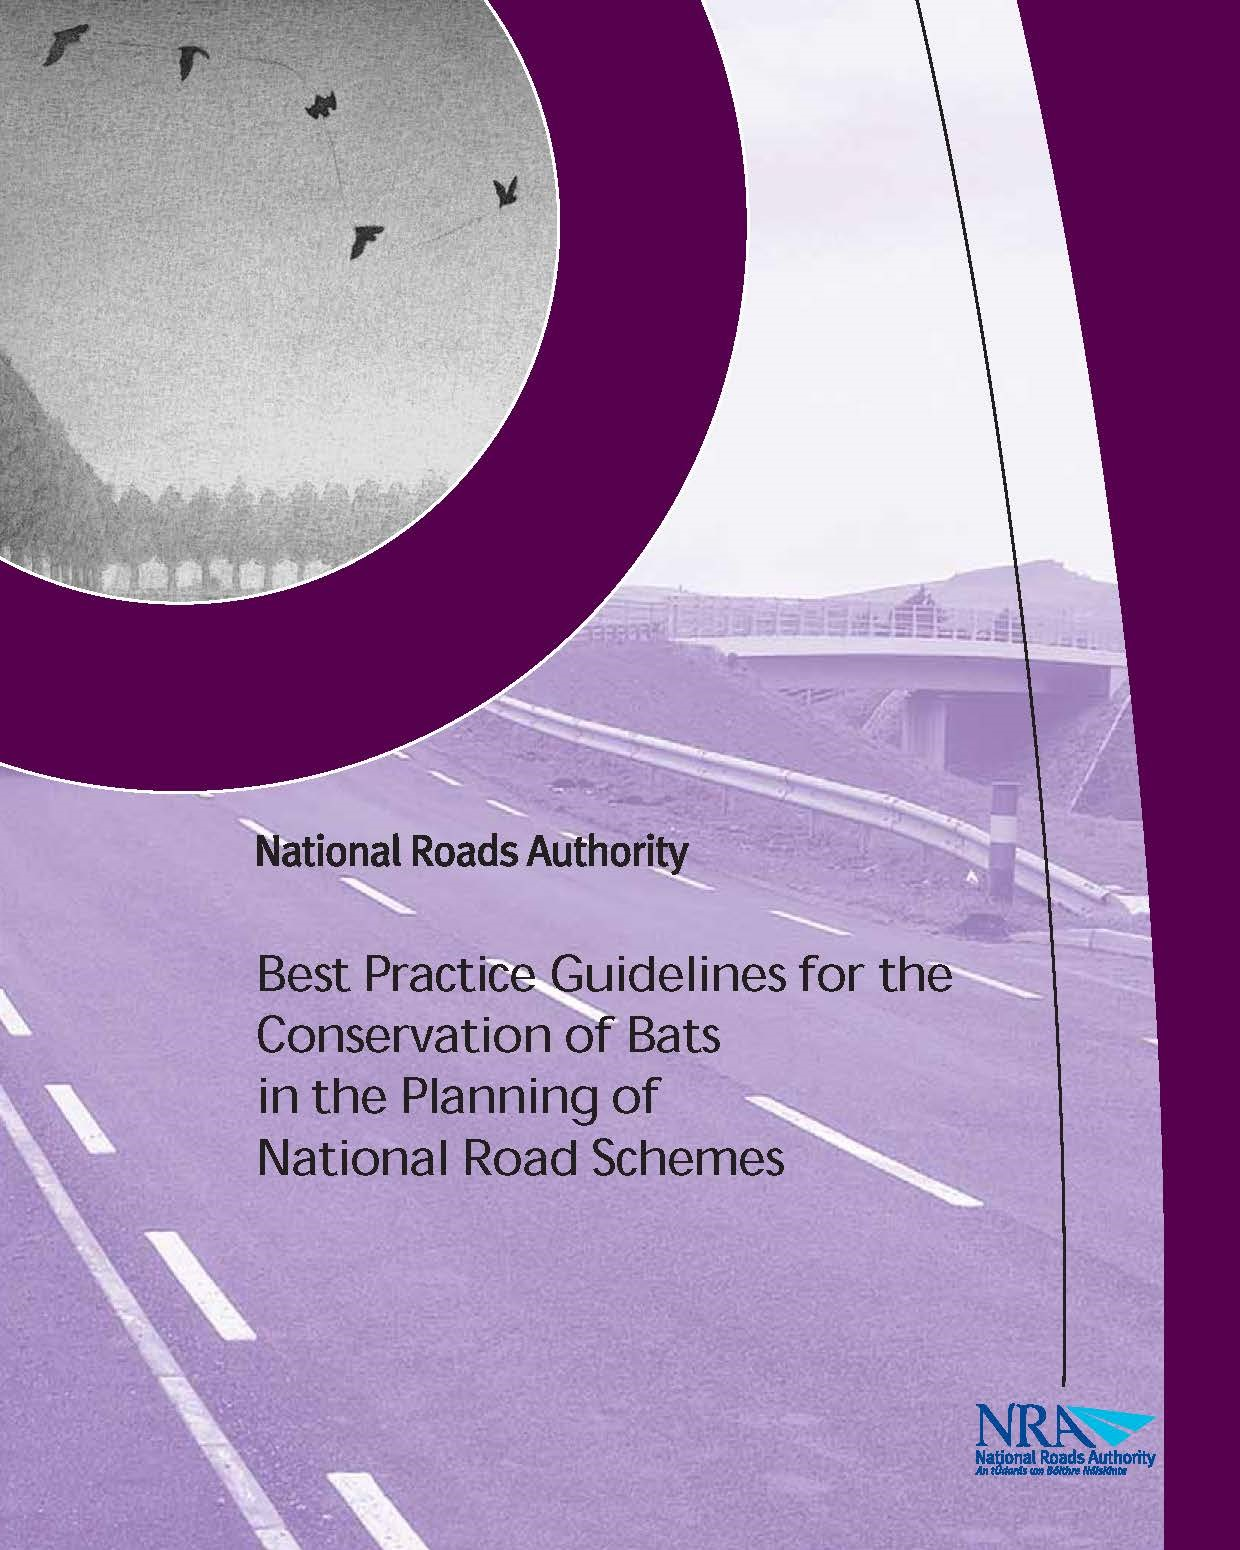 Best Practice Guidelines for the Conservation of Bats in the Planning of National Road Schemes. National Roads Authority (NRA)